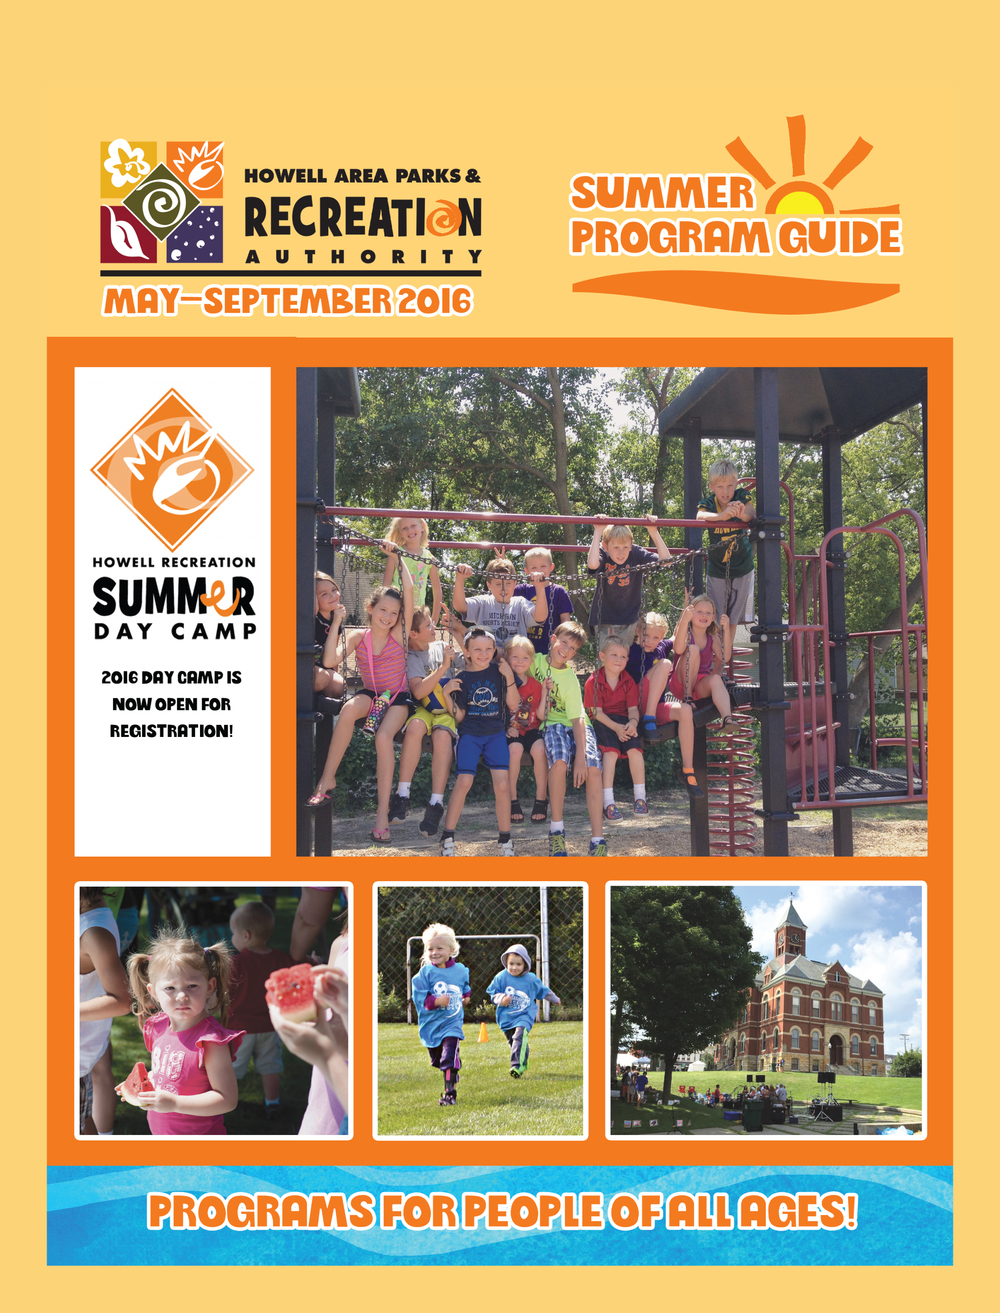 Summer Program Guide Cover.jpg